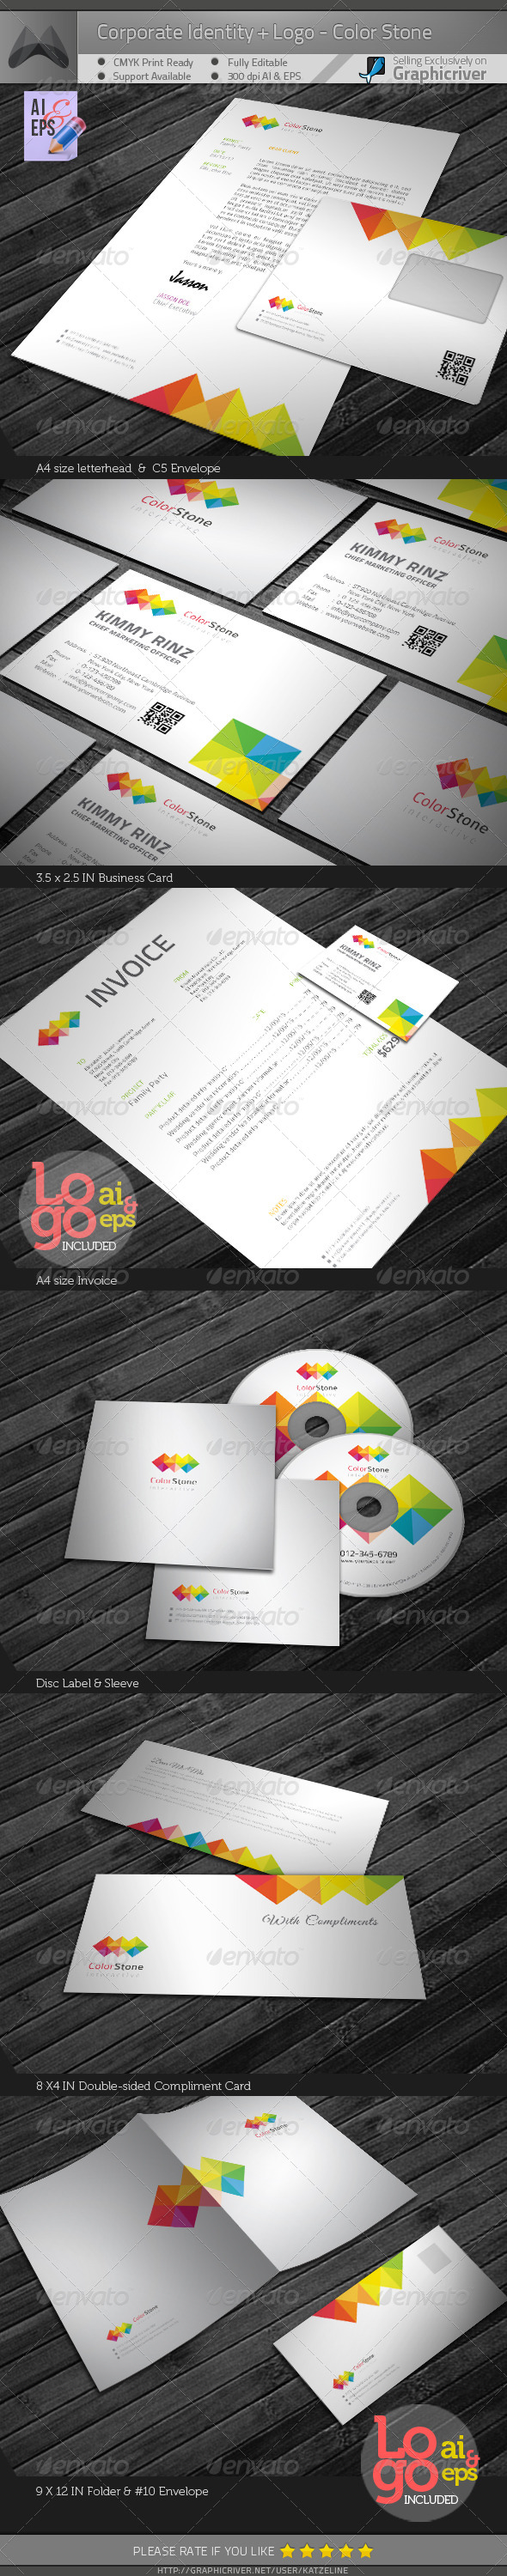 Corporate identity package color square graphicriver corporate color square graphicriver corporate identity package color square contains 1 letterhead a4 size 2 invoice a4 size 3 business card 35x25 reheart Image collections